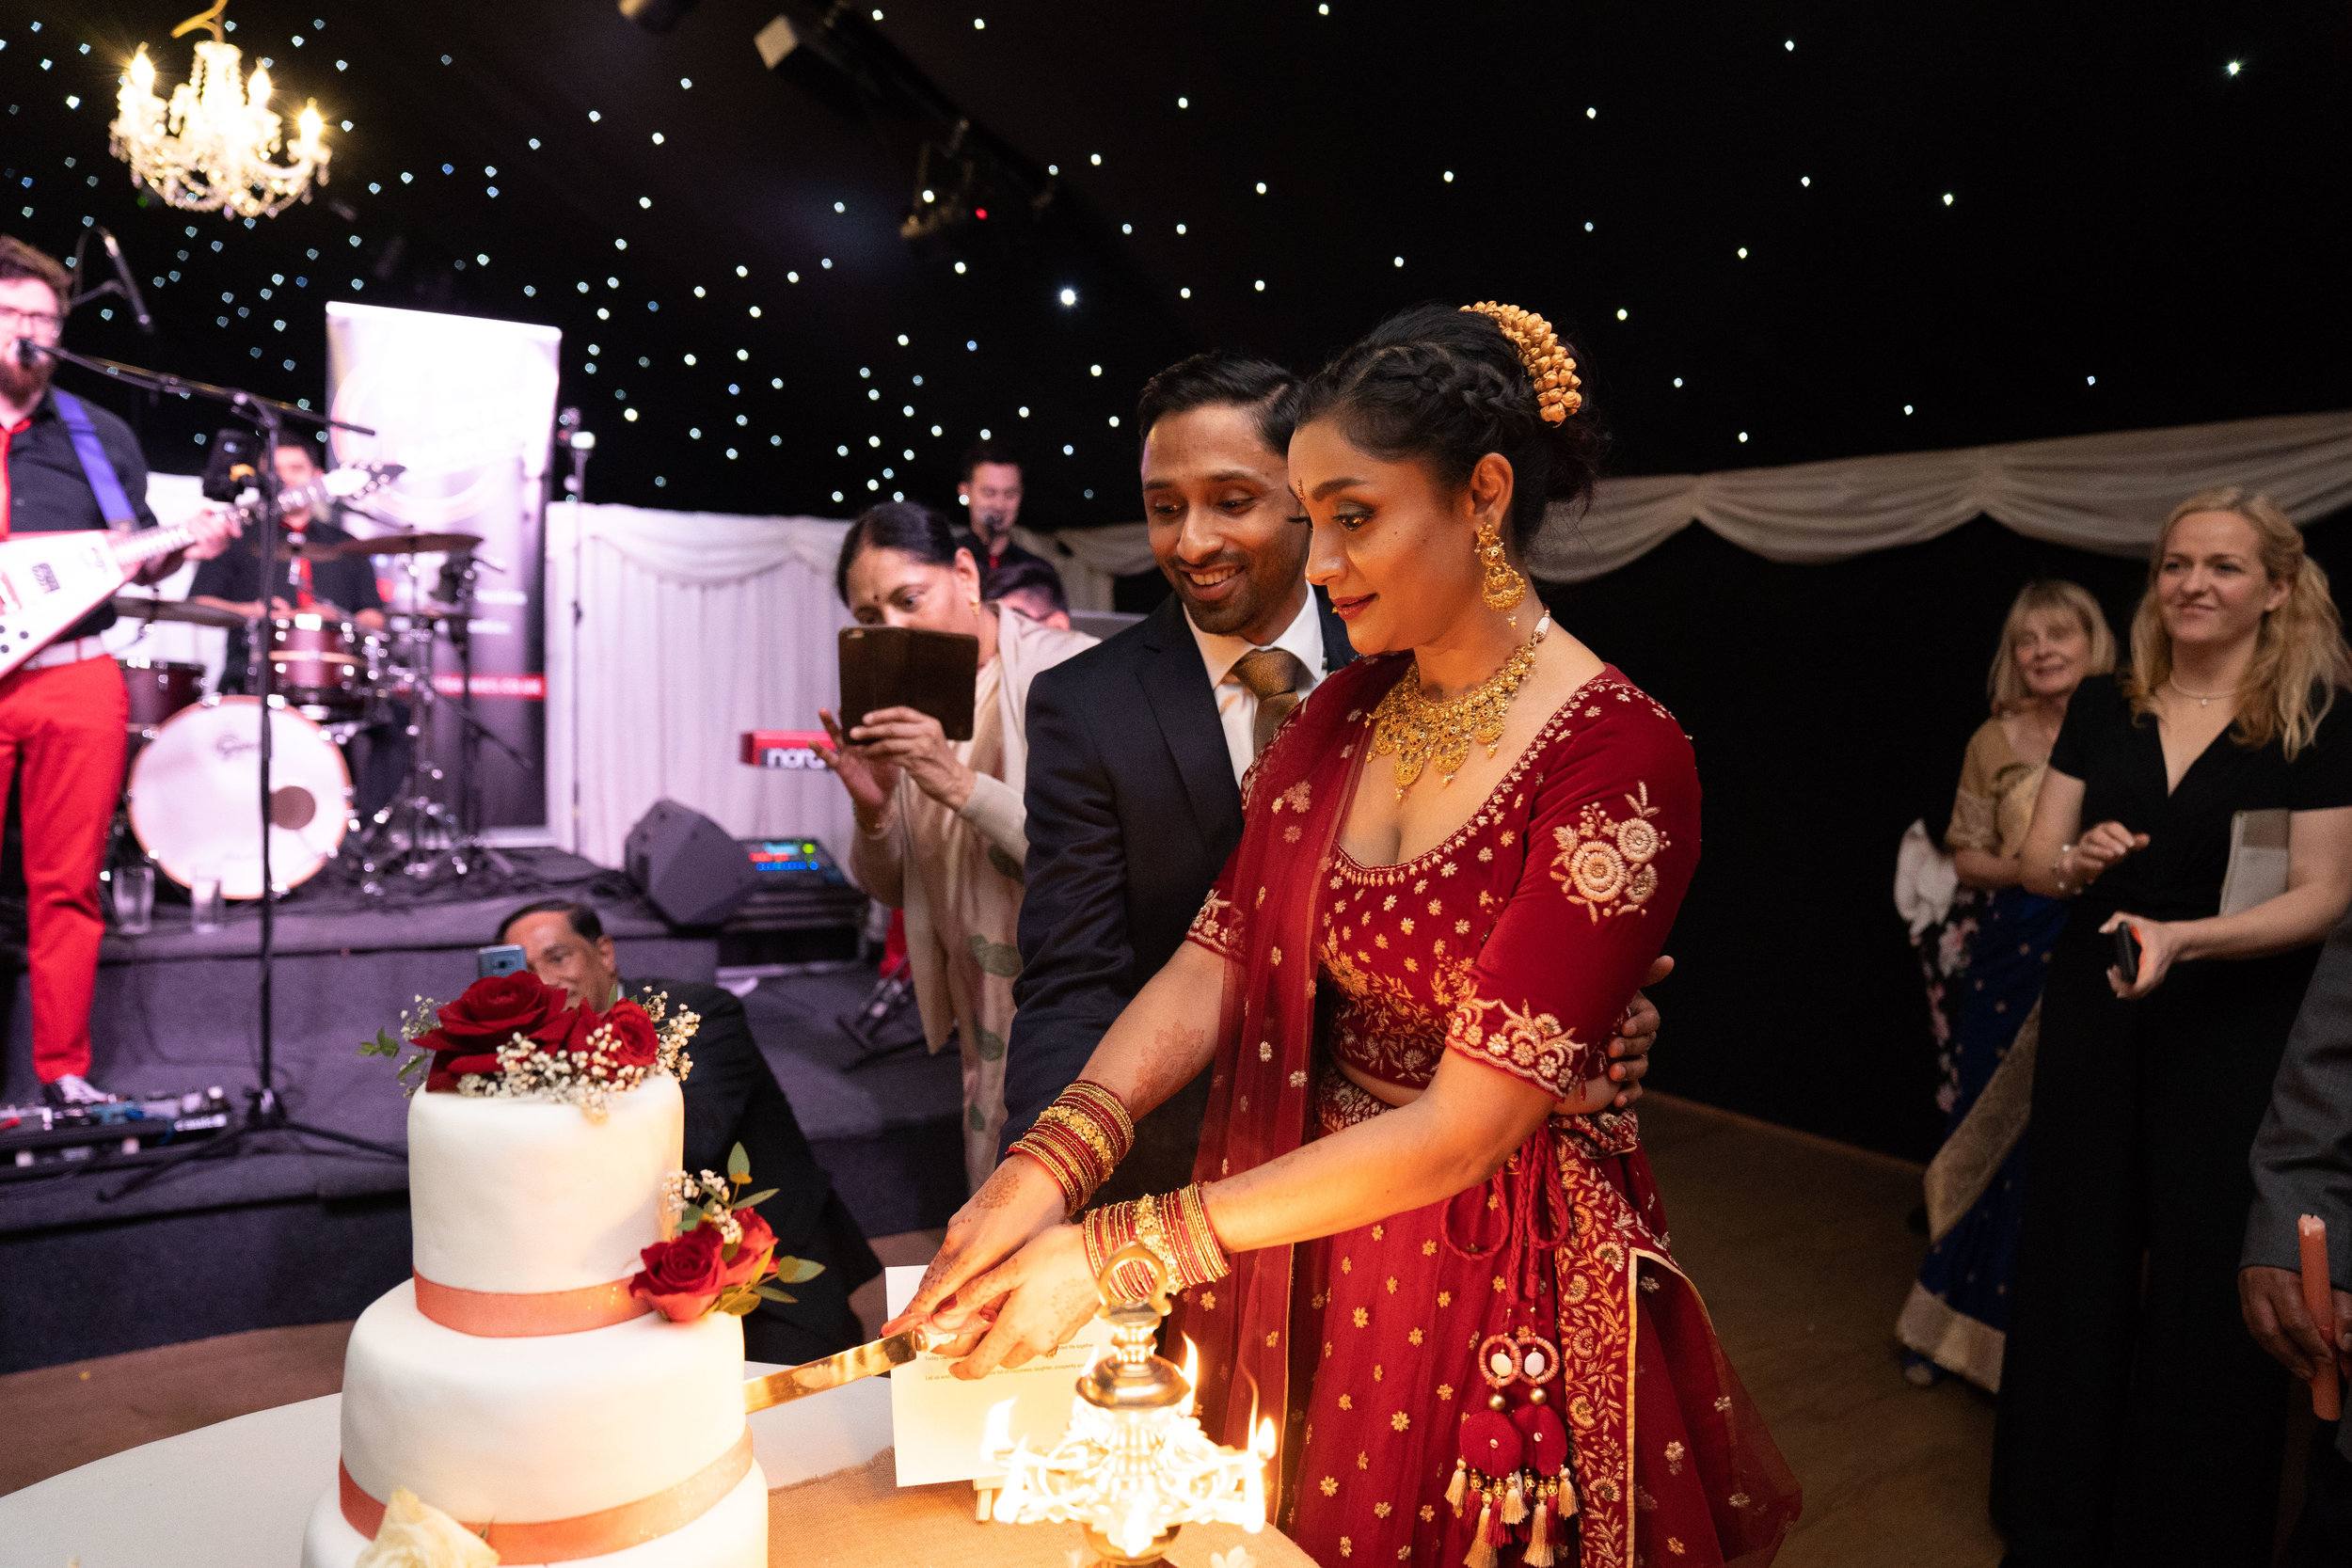 heaton-house-christmas-winter-wedding-photography-videography-manchester-79